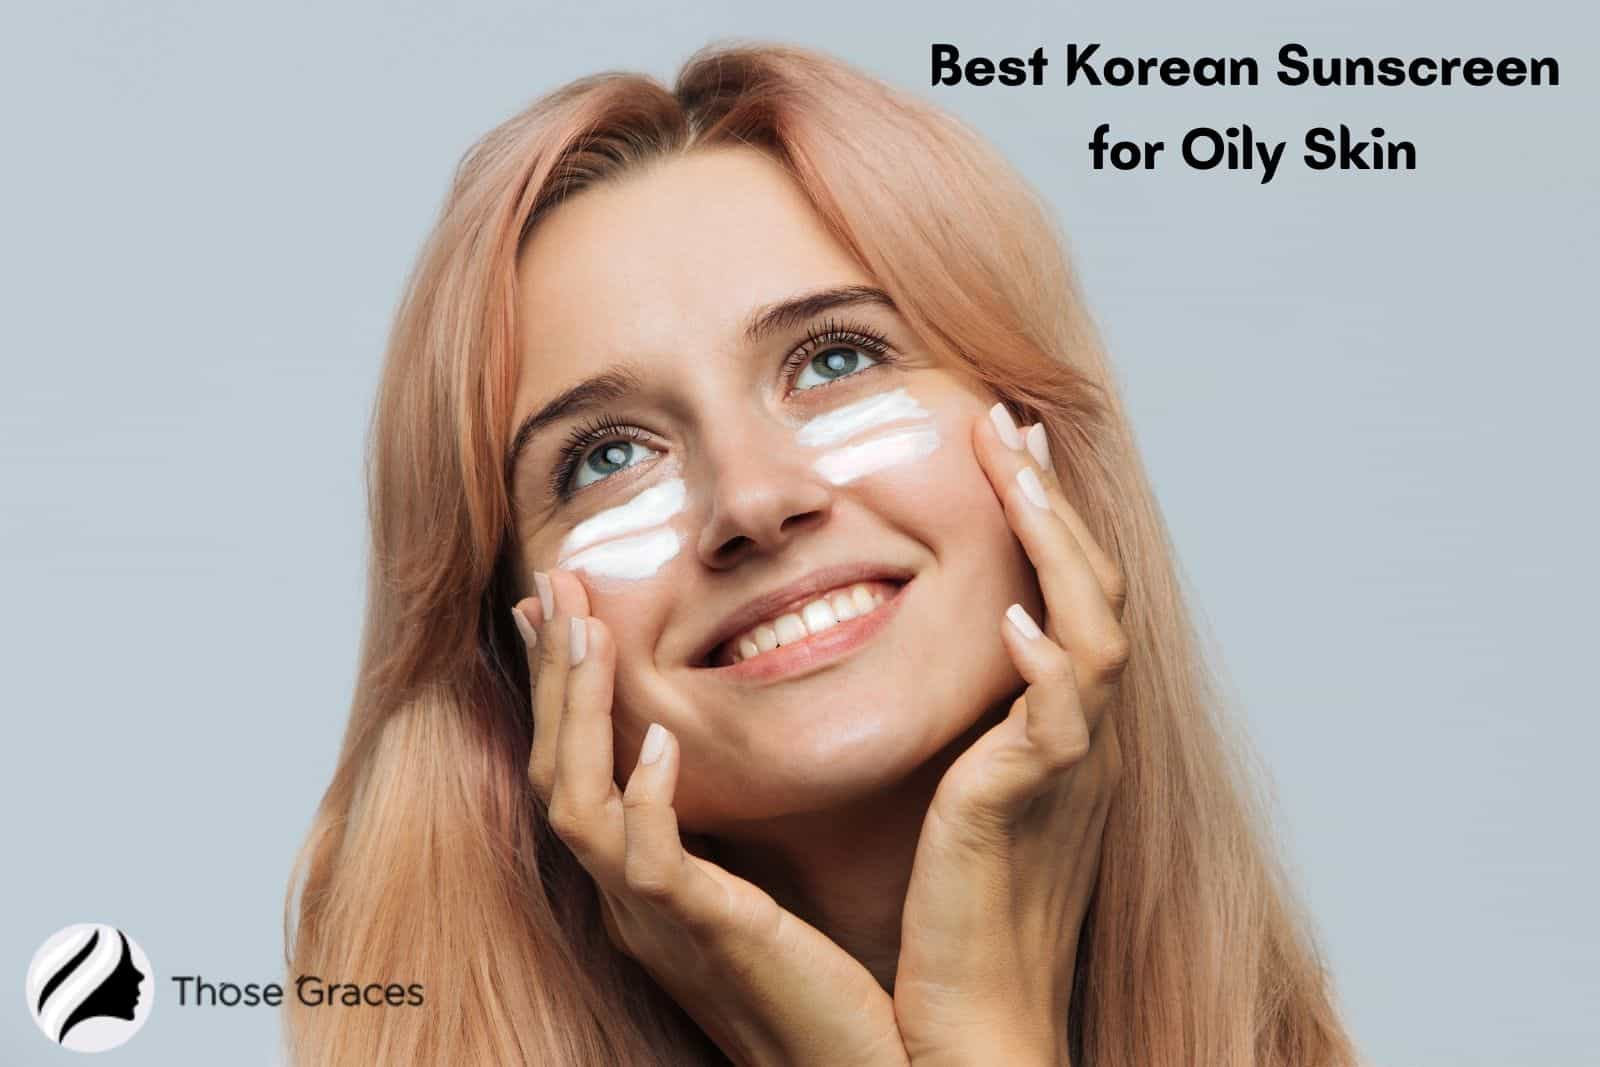 a blonde smiling lady using the best korean sunscreen for oily skin